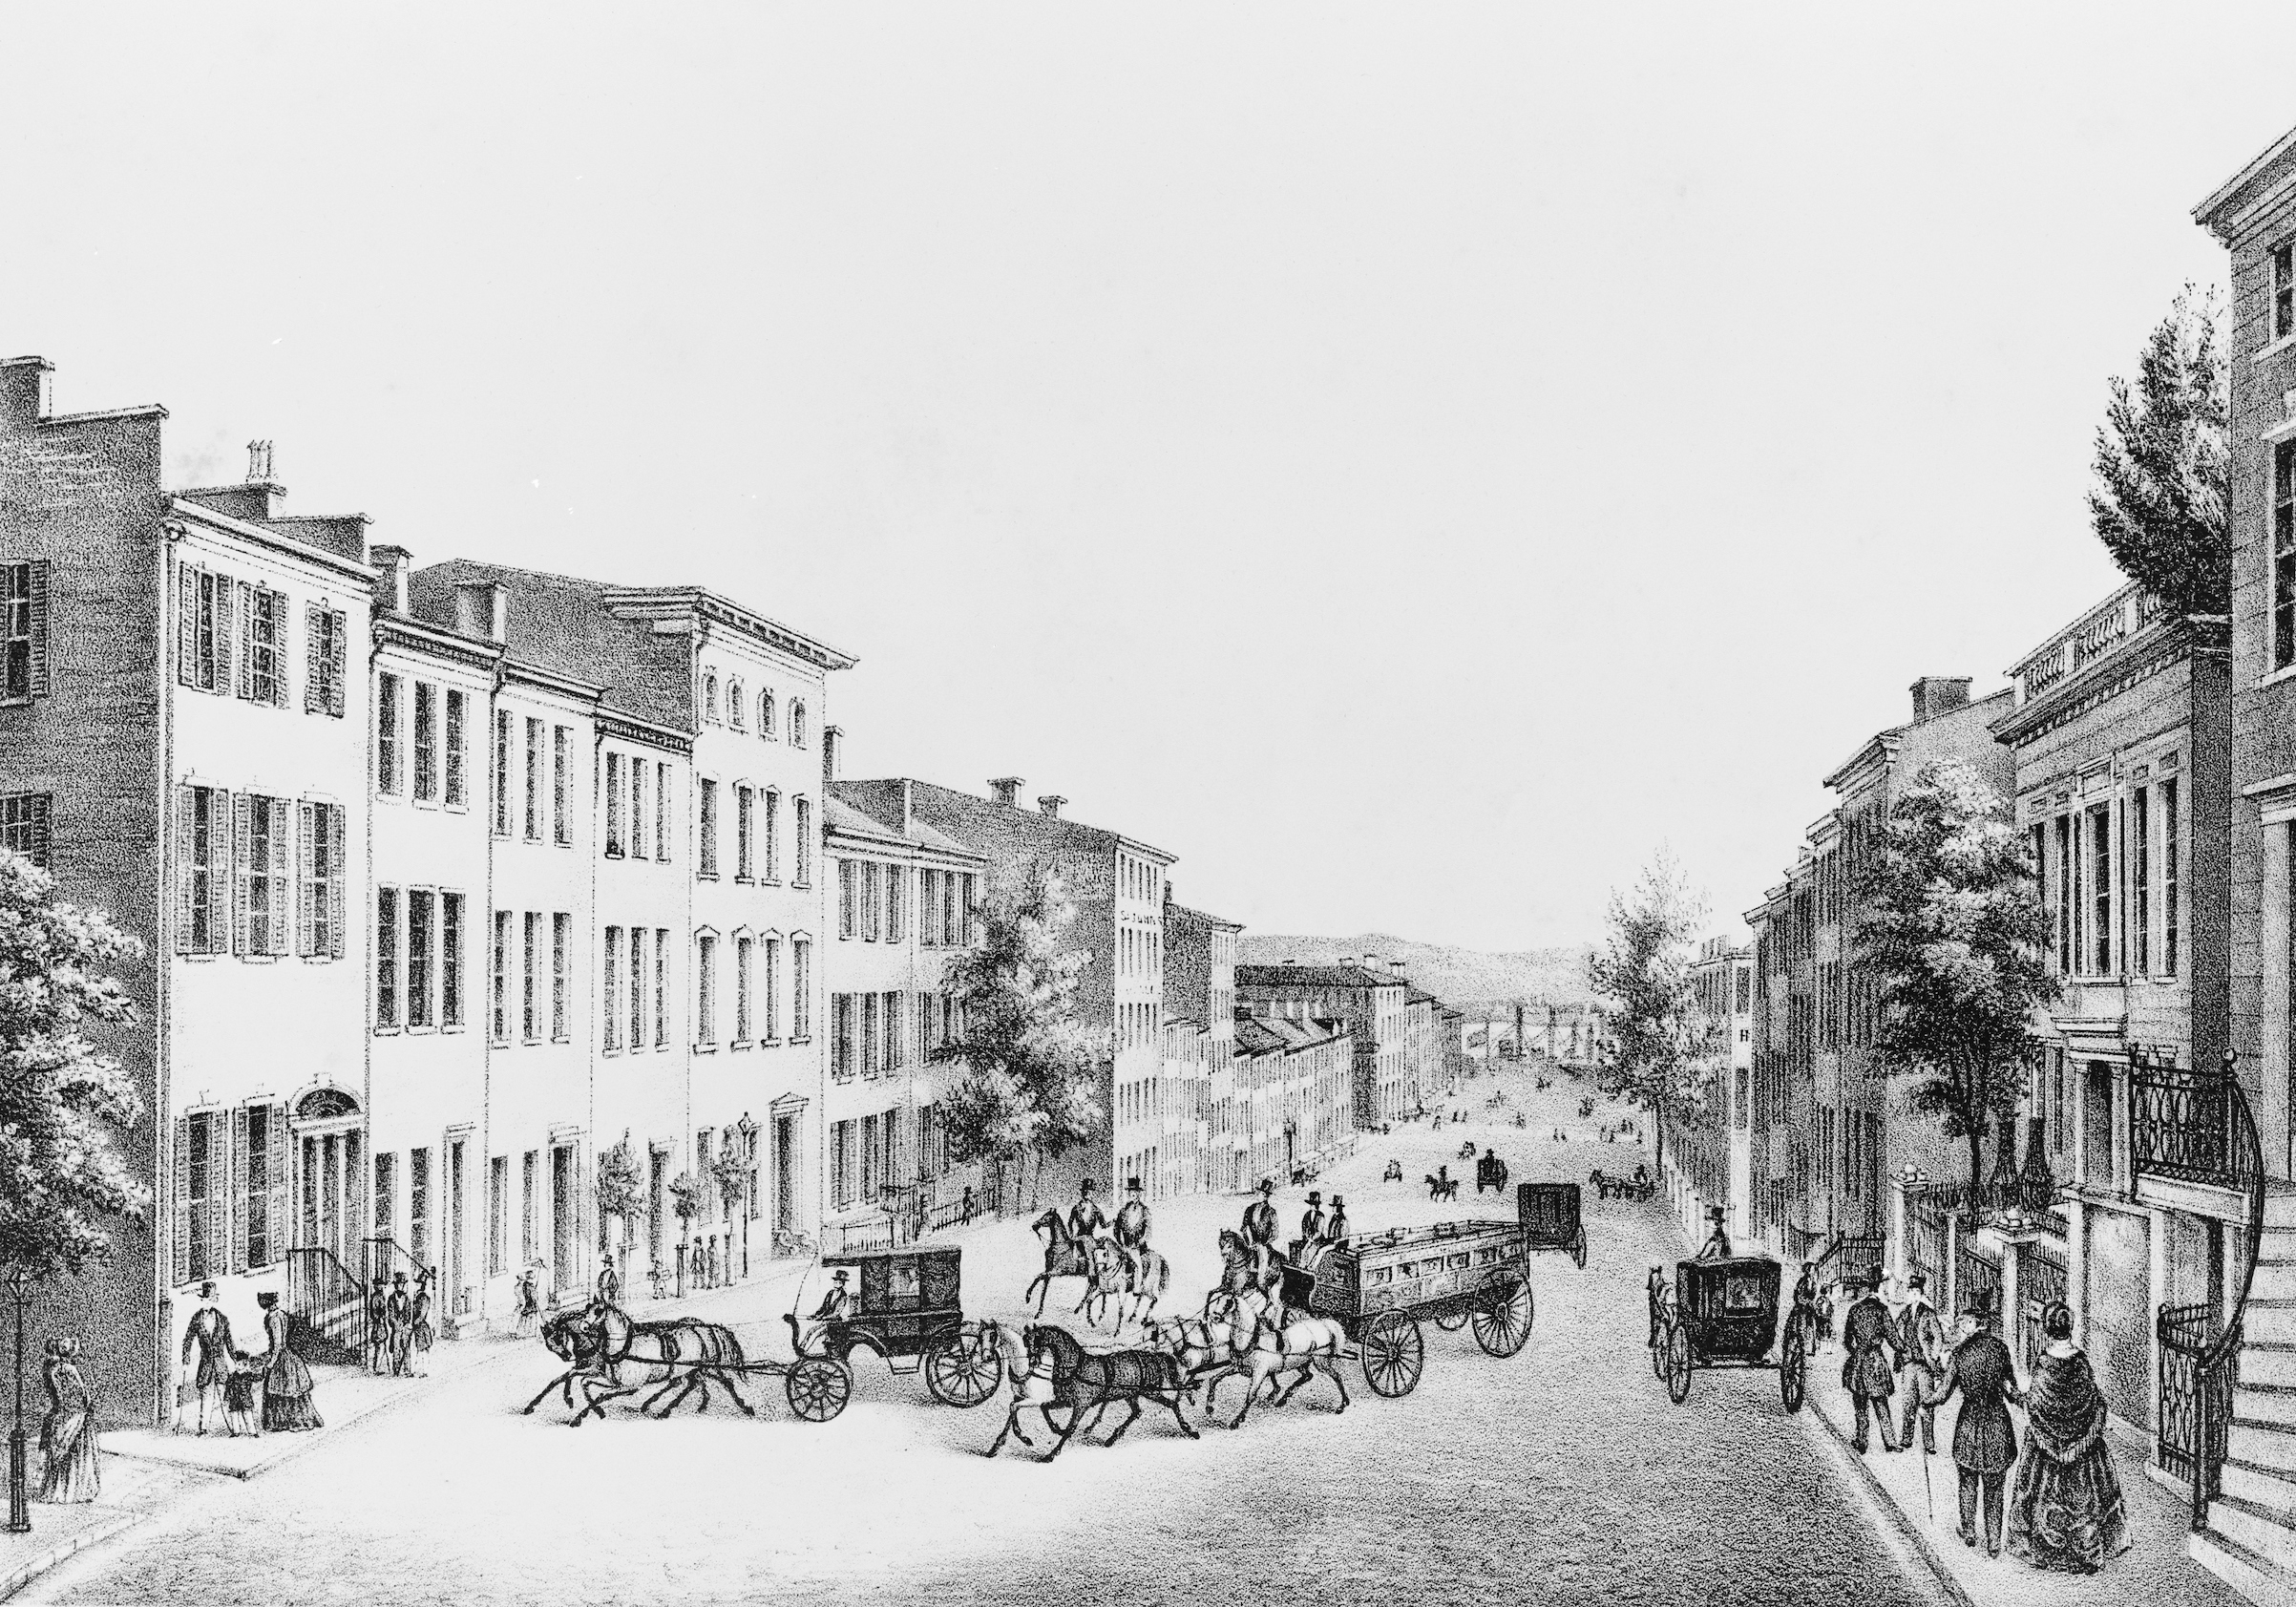 A lithograph depicting Lower Broadway in New York City in the 1830s